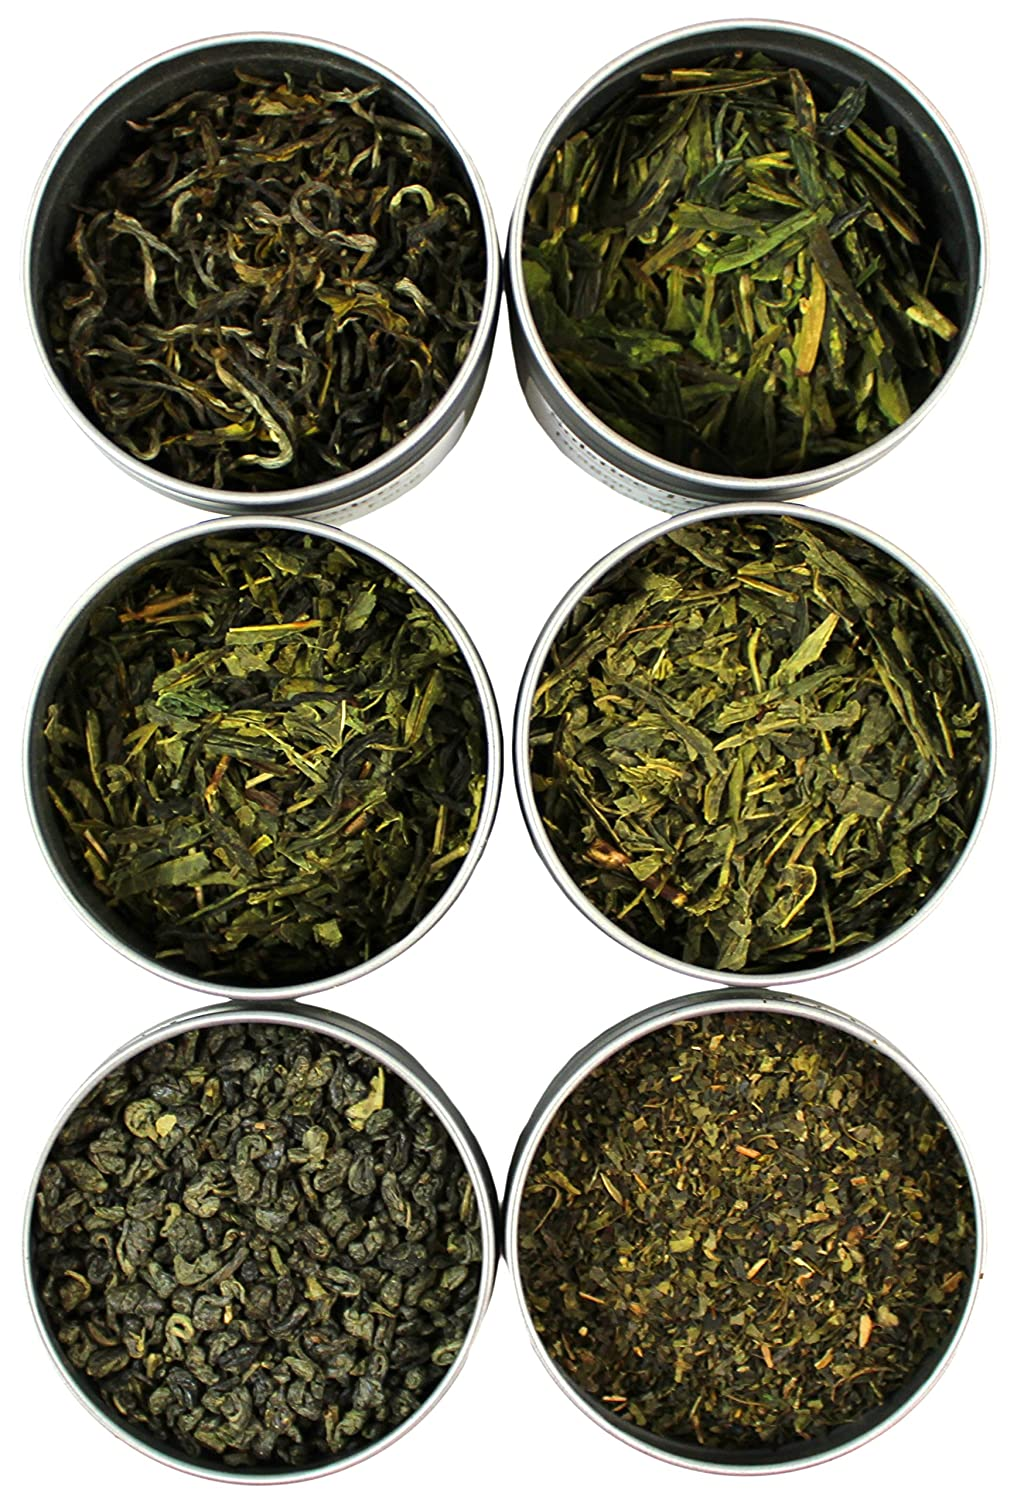 Loose Leaf Green Tea Sampler, Exotic and Rare Green Tea Loose Leaf Tea Sampler, Dragon Well, Gunpowder, Sencha, and More, Loose Tea Sampler